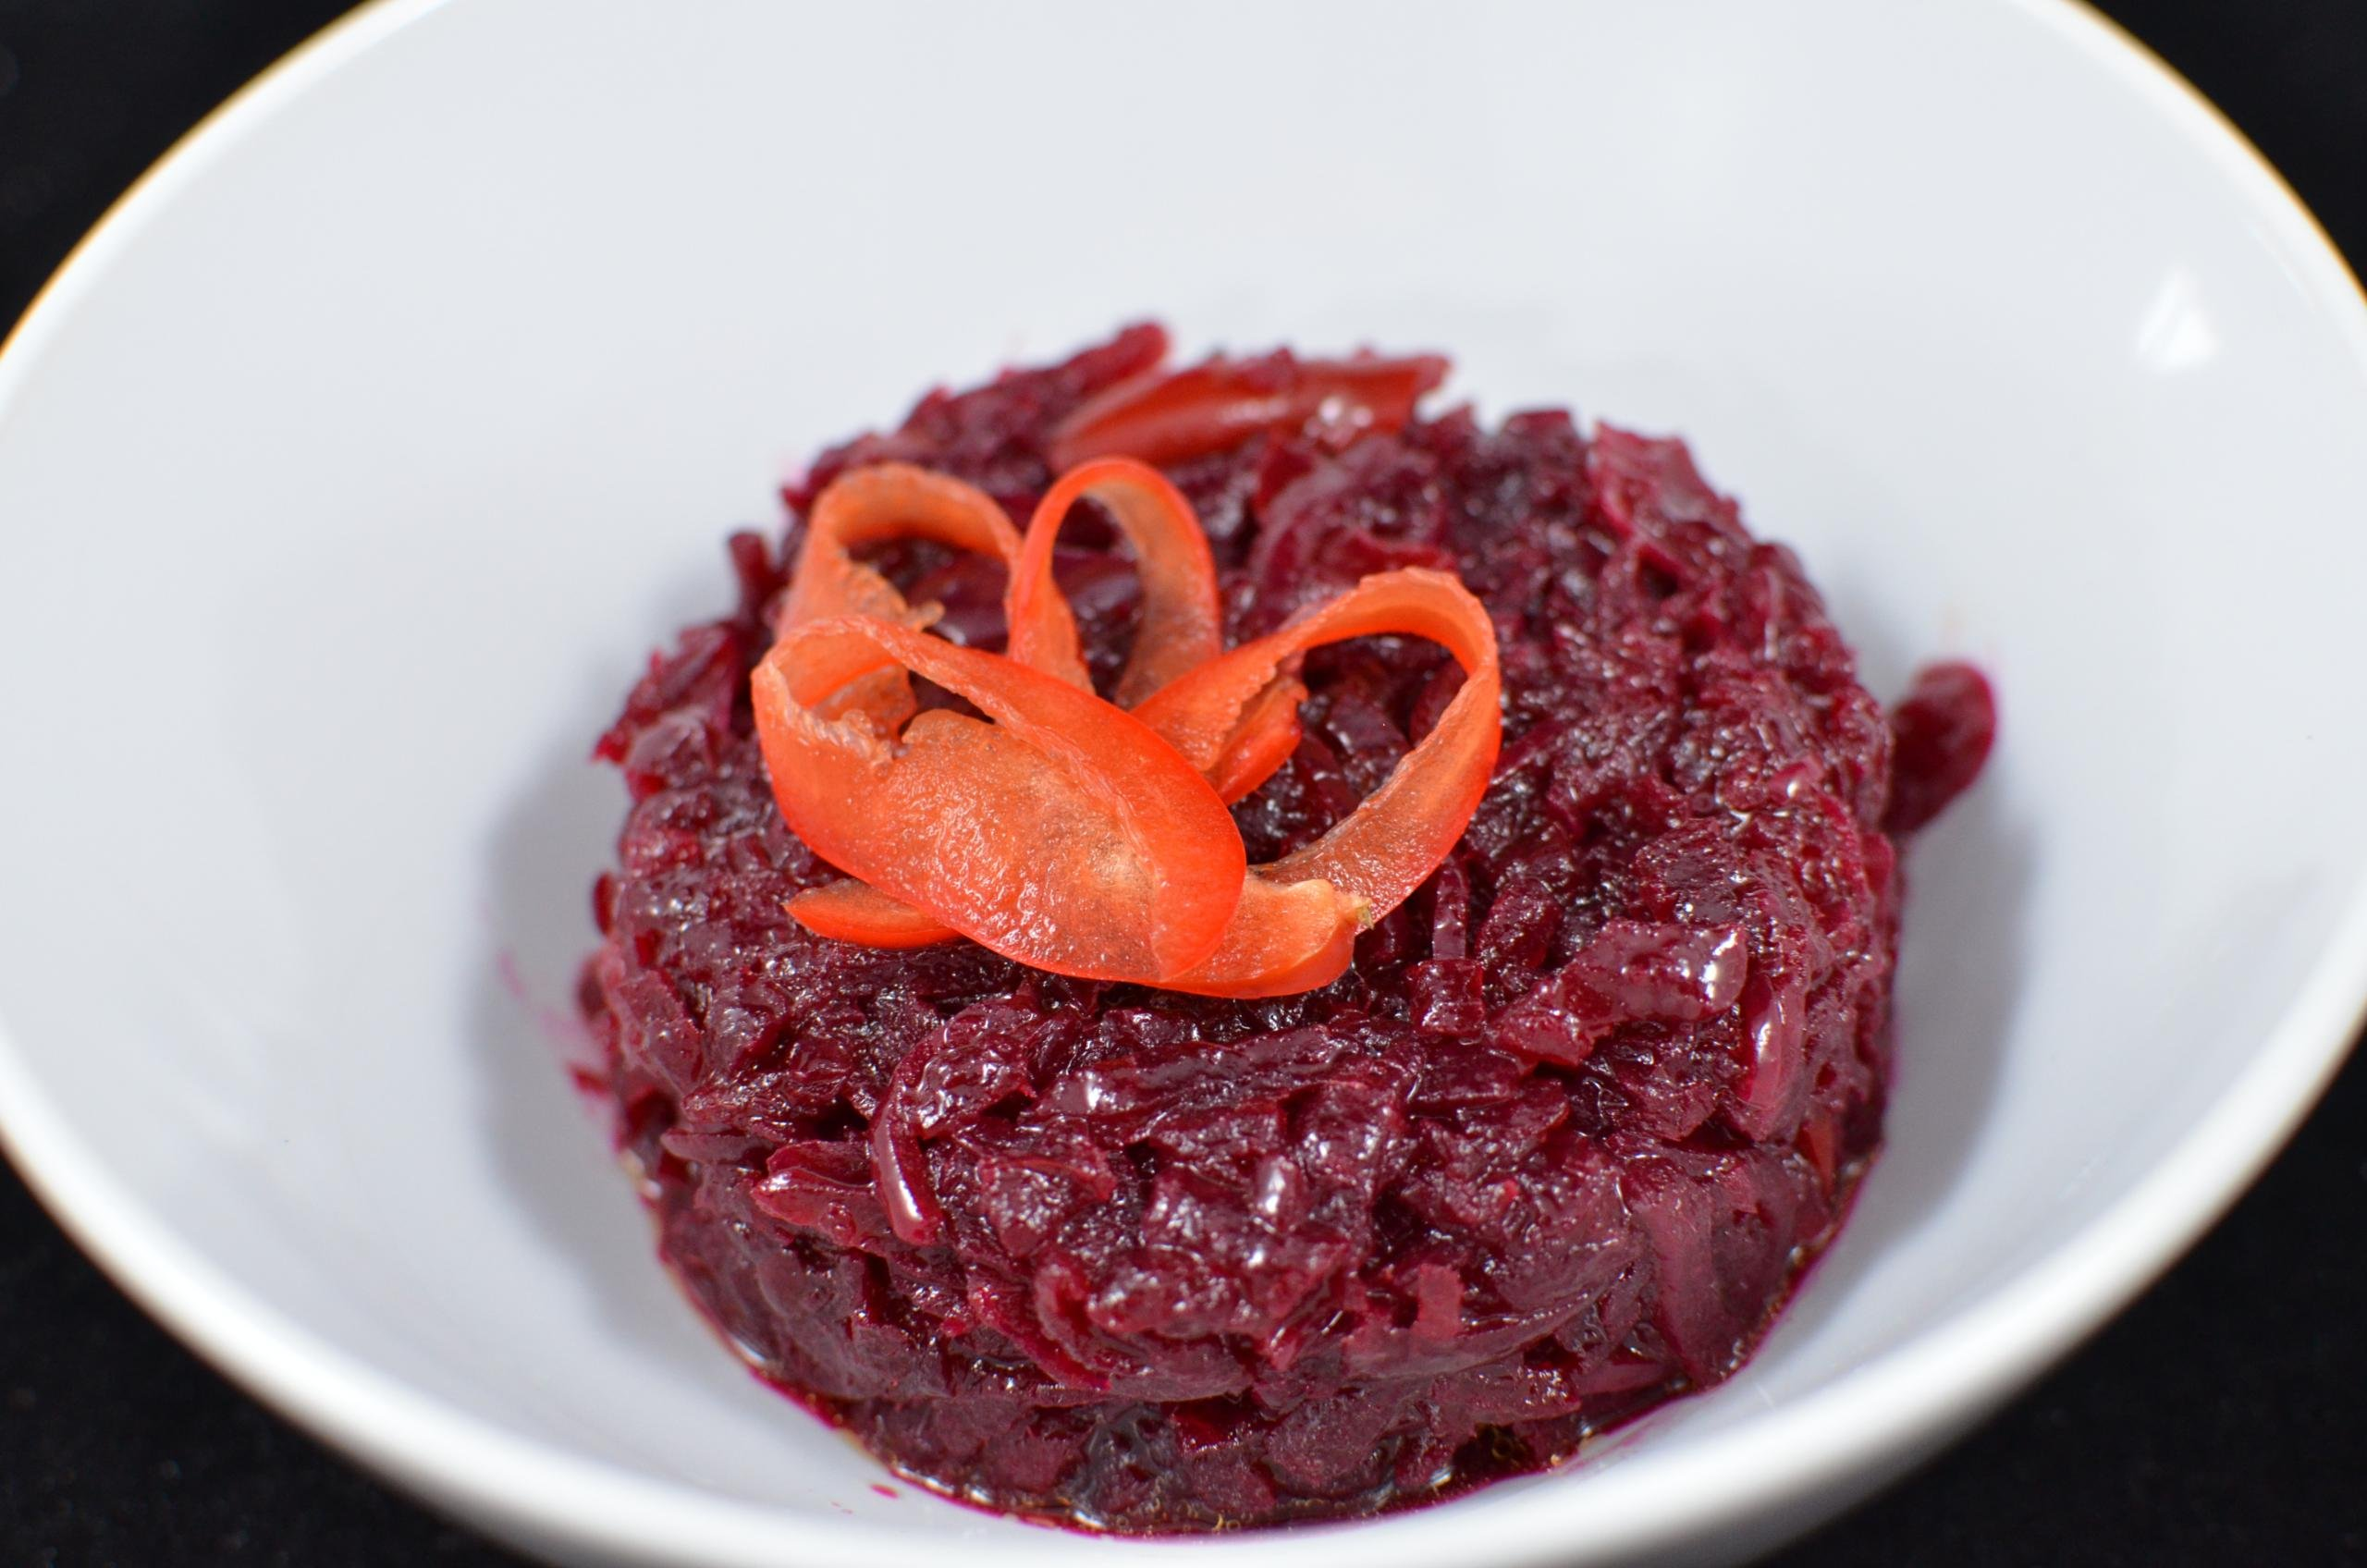 Marinated Beet Salad in a bowl